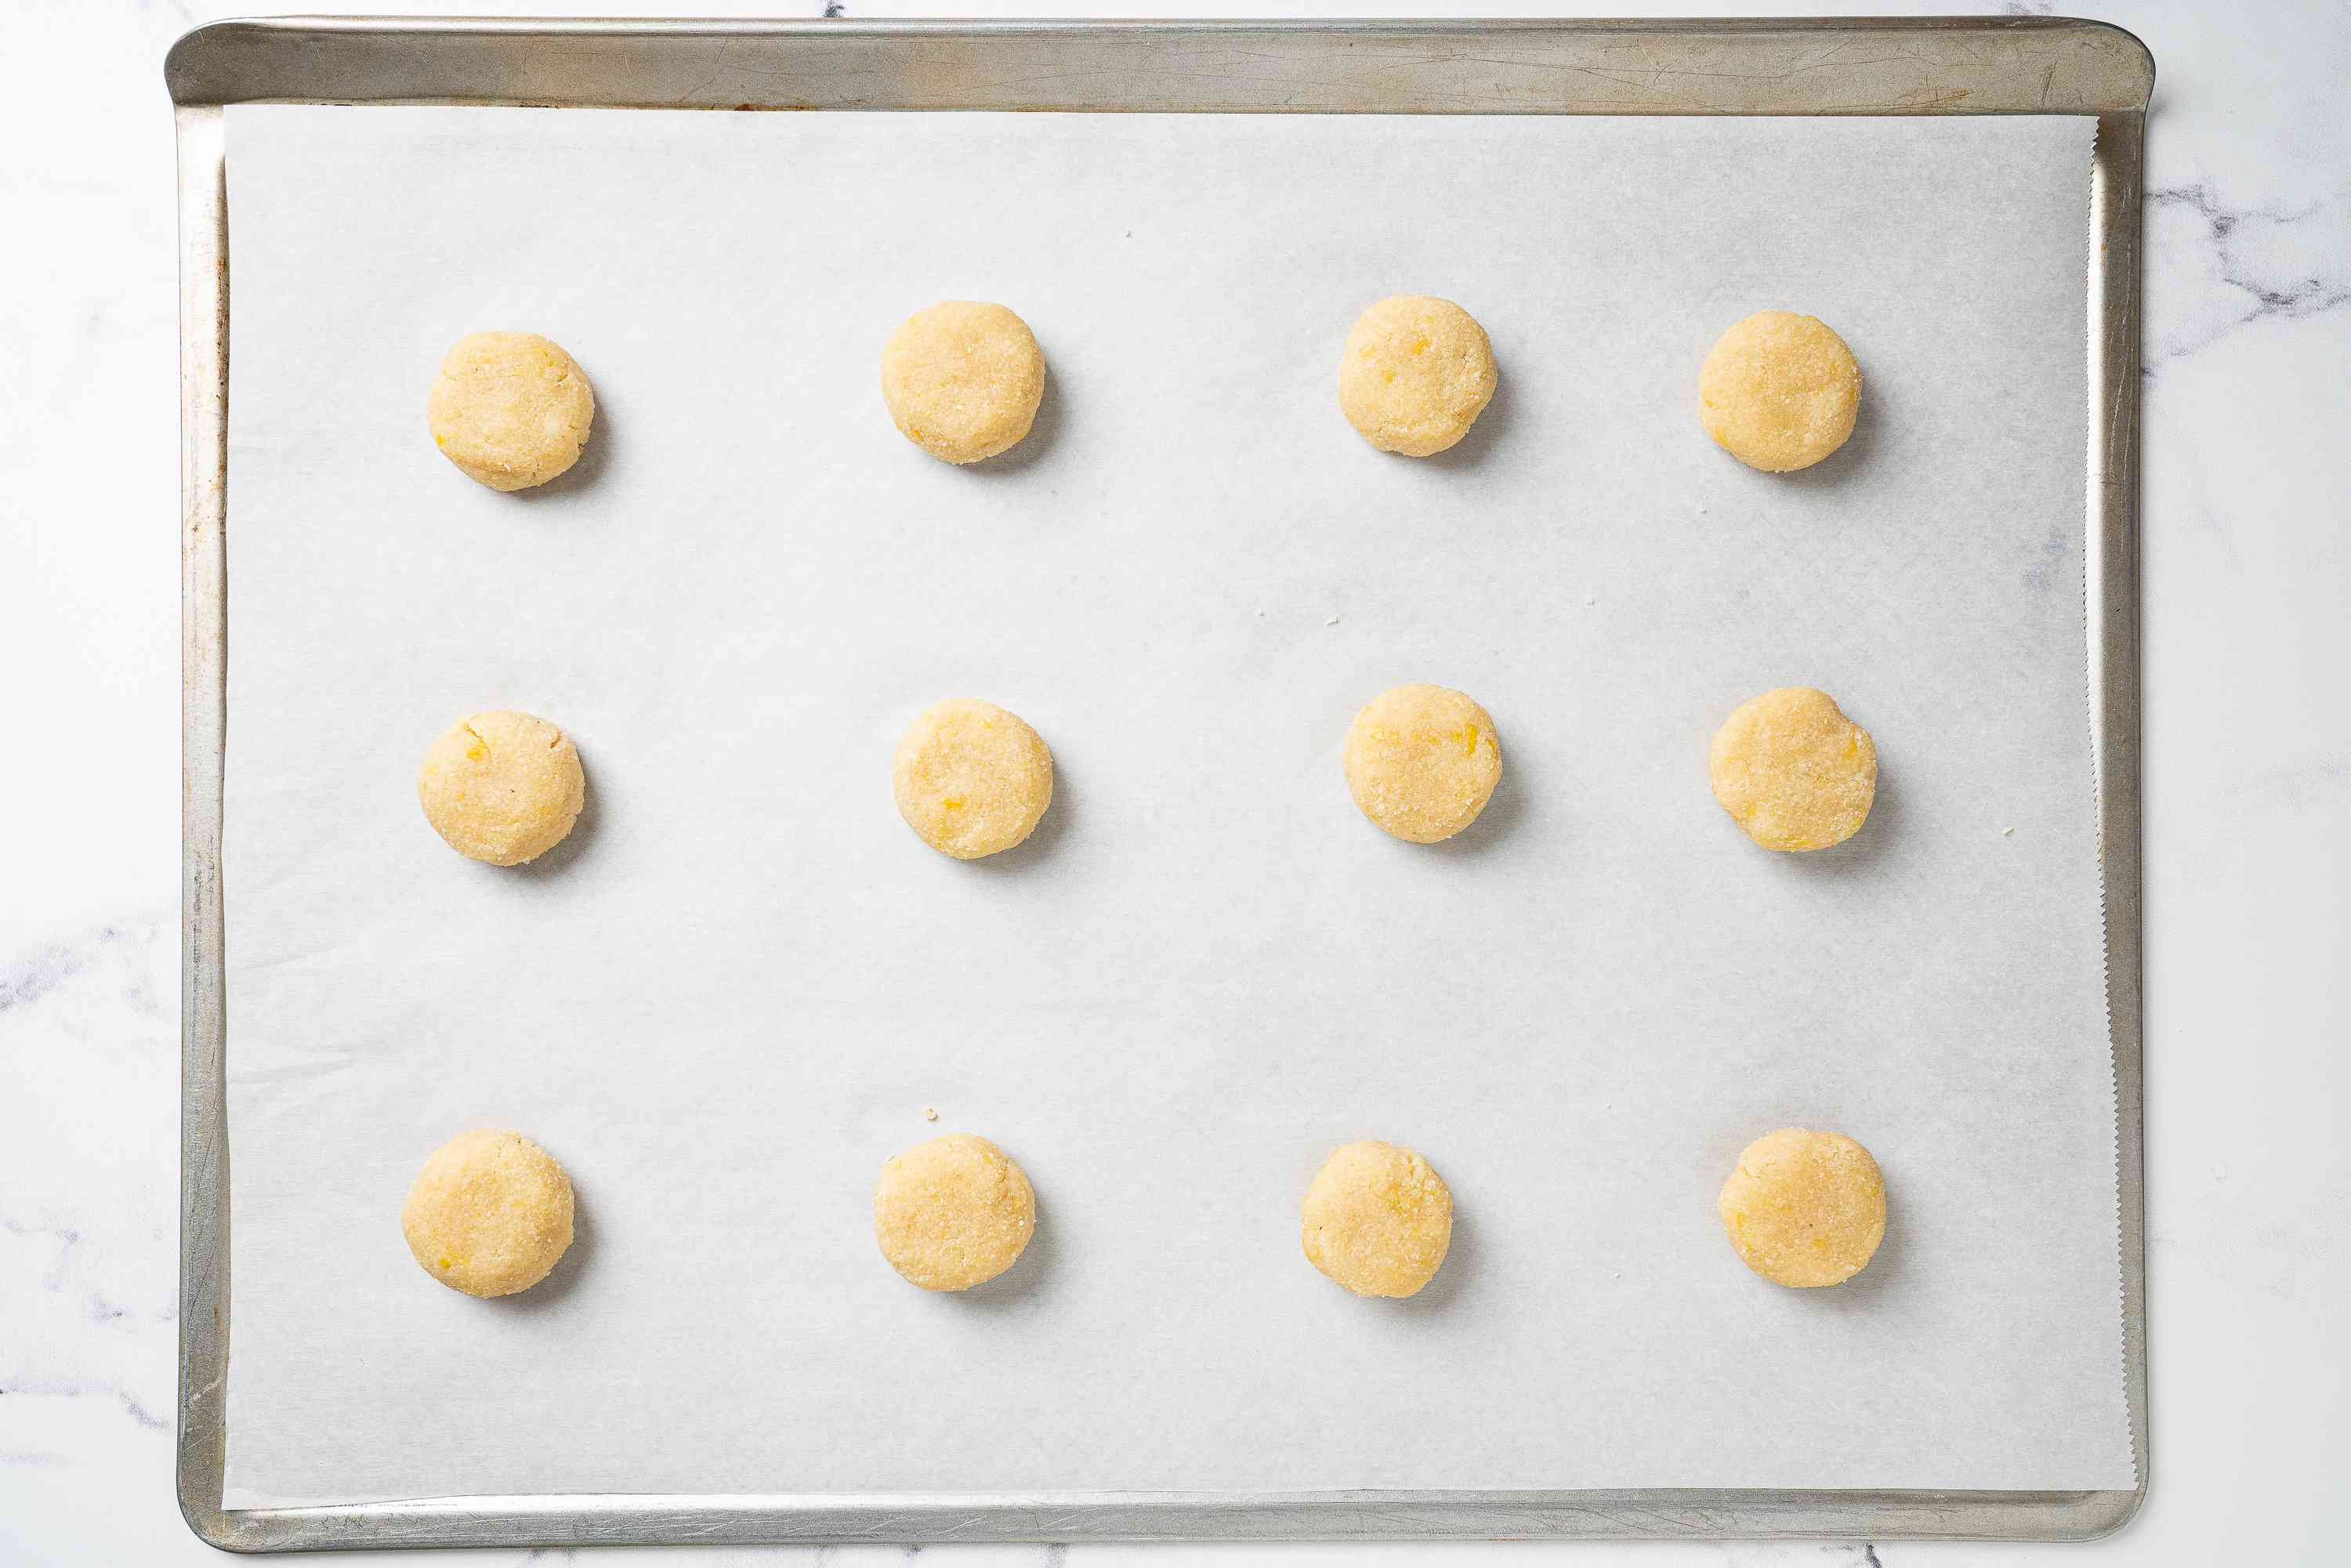 Keto Shortbread Cookies rolled onto parchment lined baking sheet